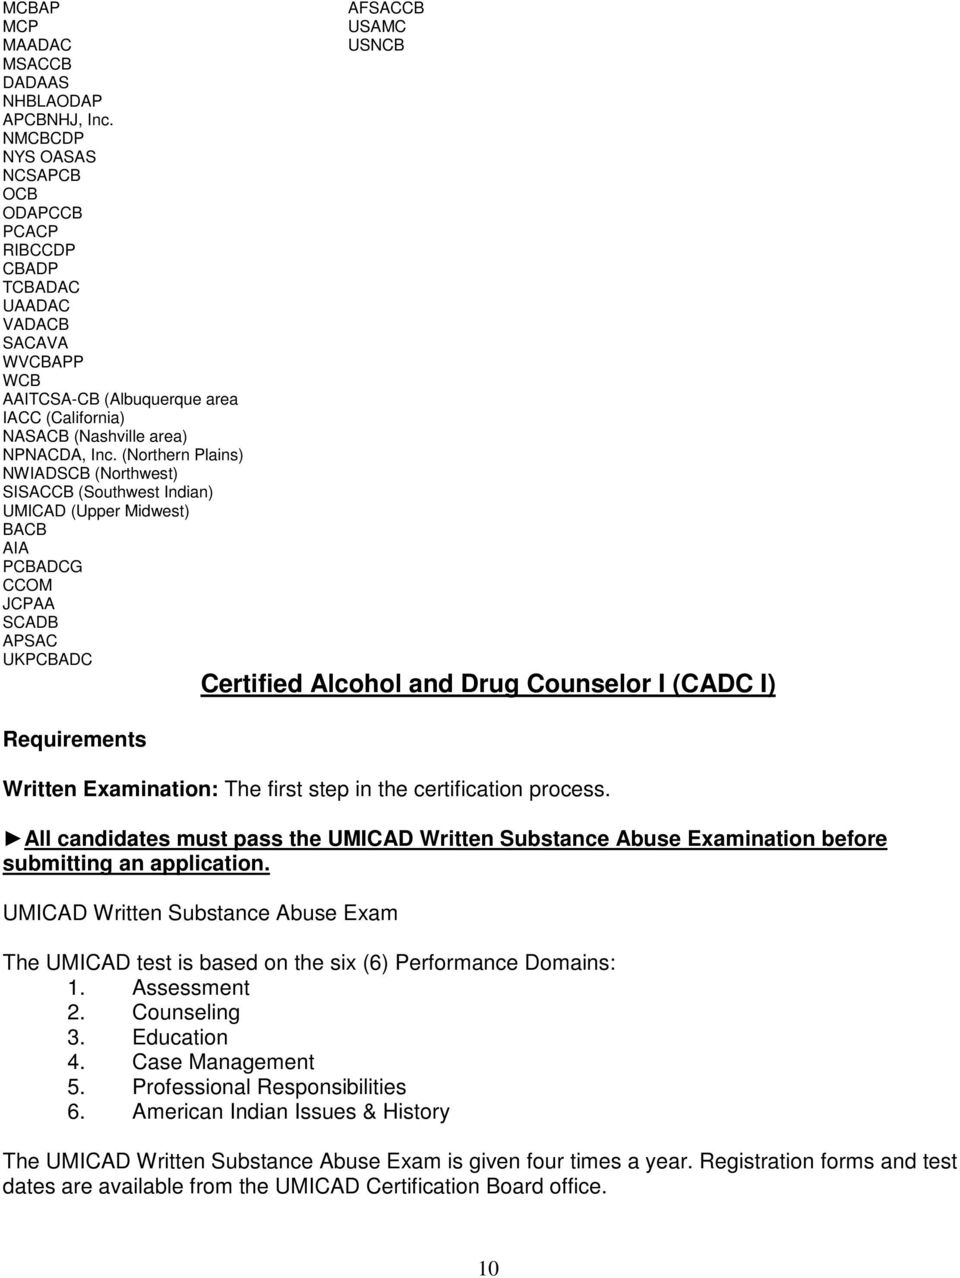 Umicad Counselor Certification Handbook Pdf